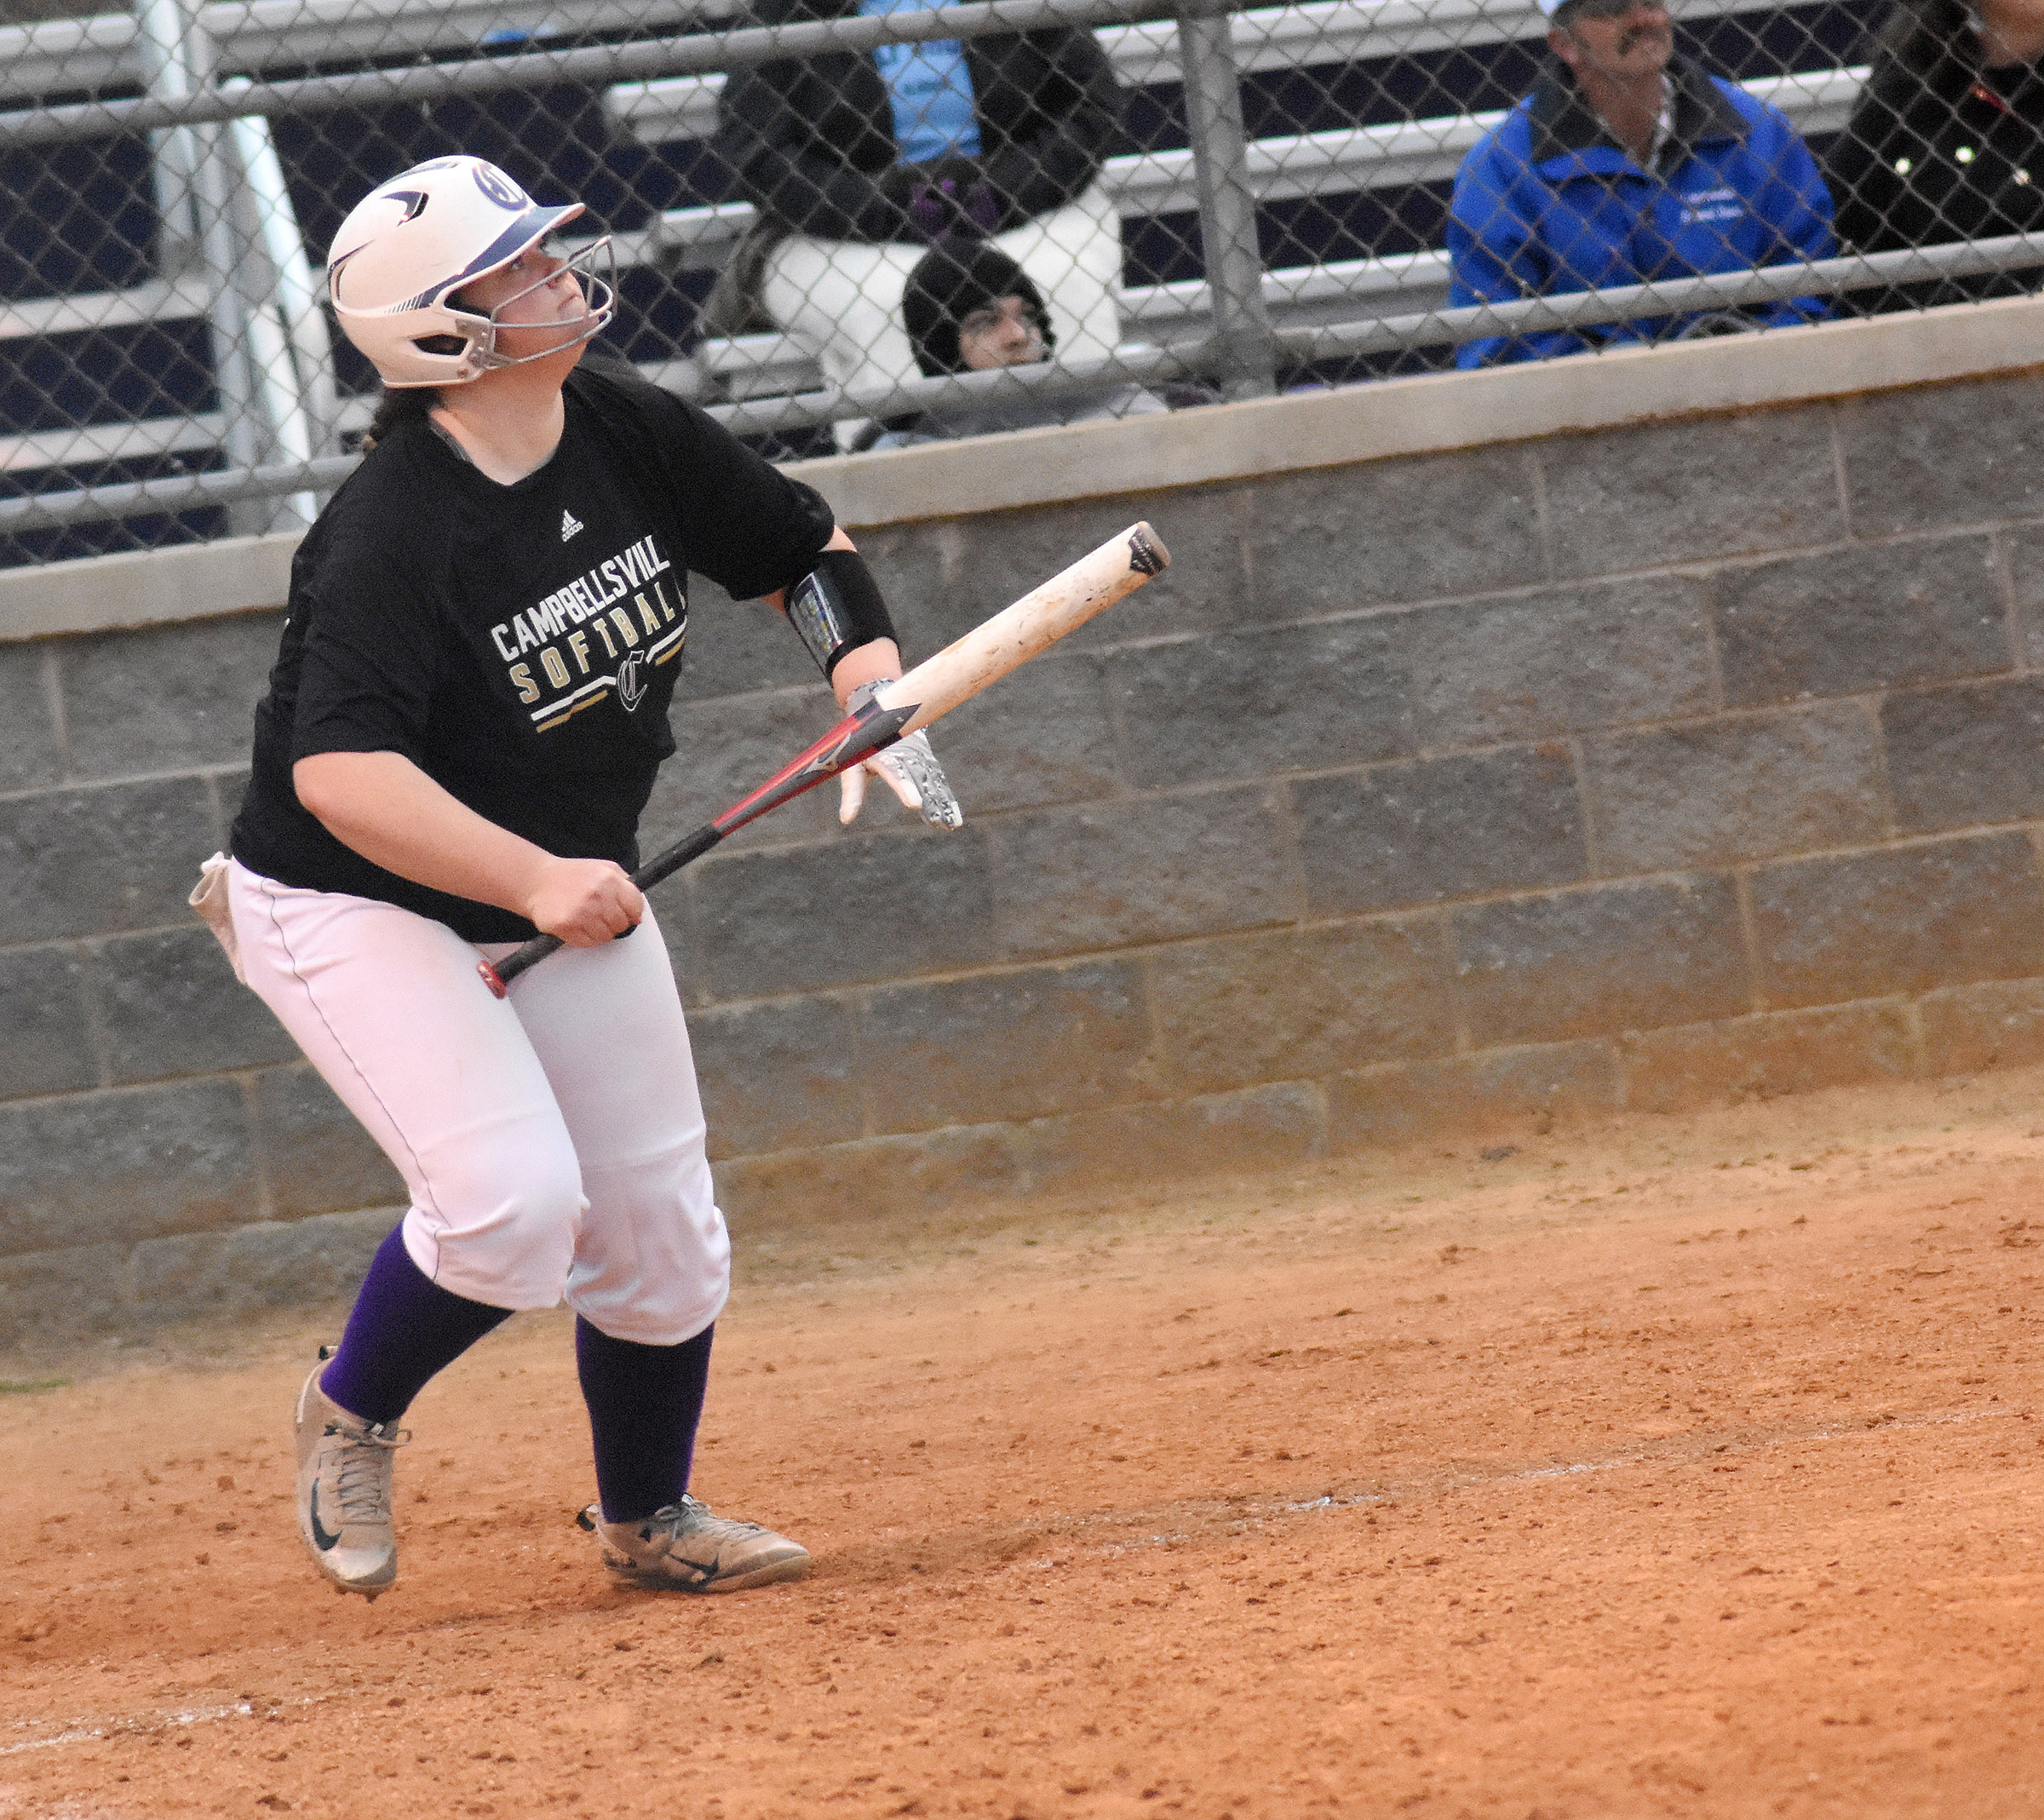 CHS sophomore Shallan Philpott watches as the ball she hit goes over the fence.